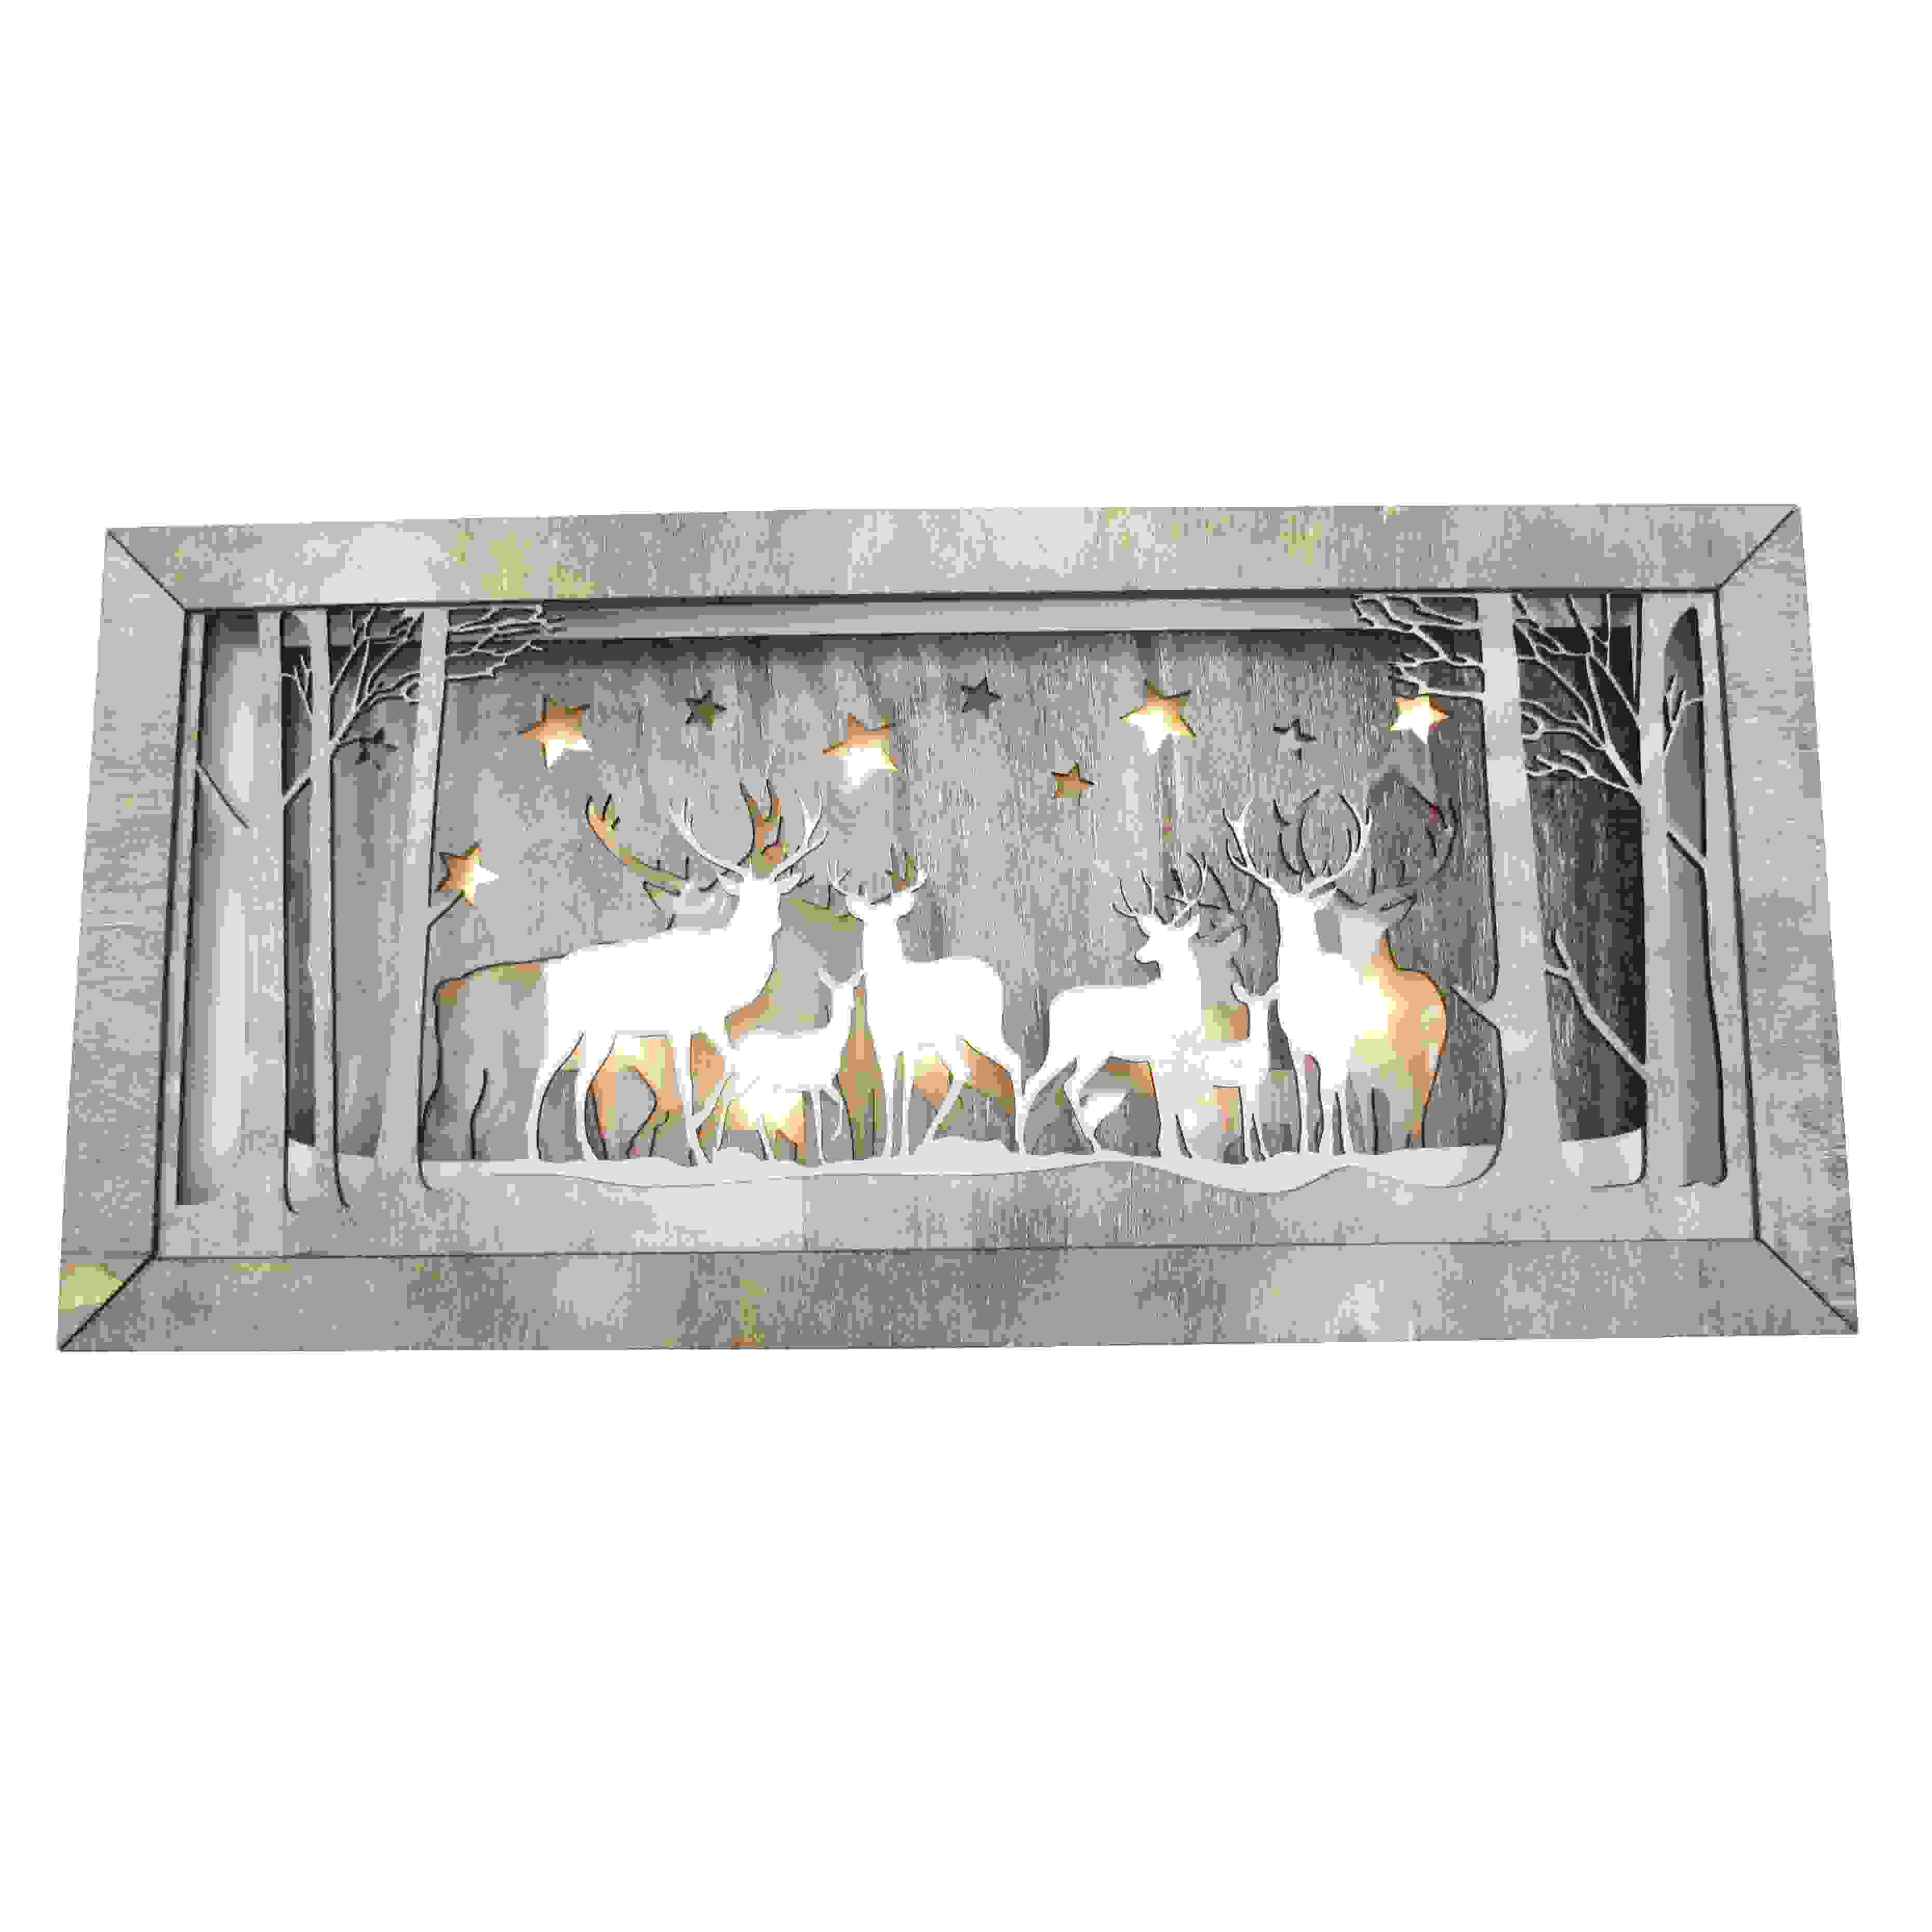 GREY WOOD FESTIVE DEER SCENE LED 37cm